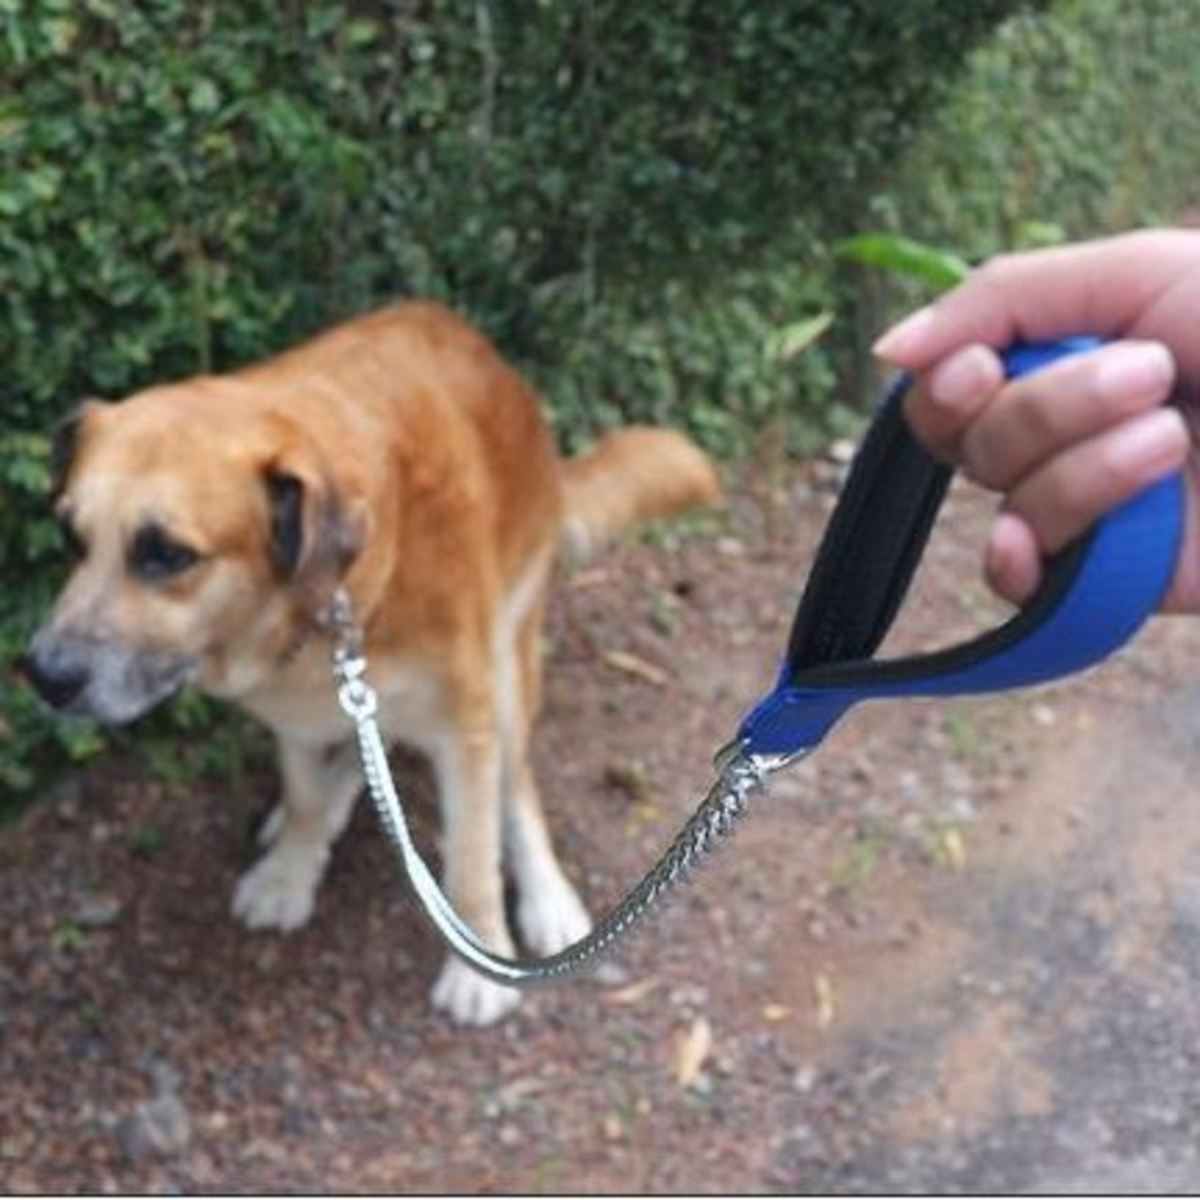 Urinary incontinence in dogs from prednisone